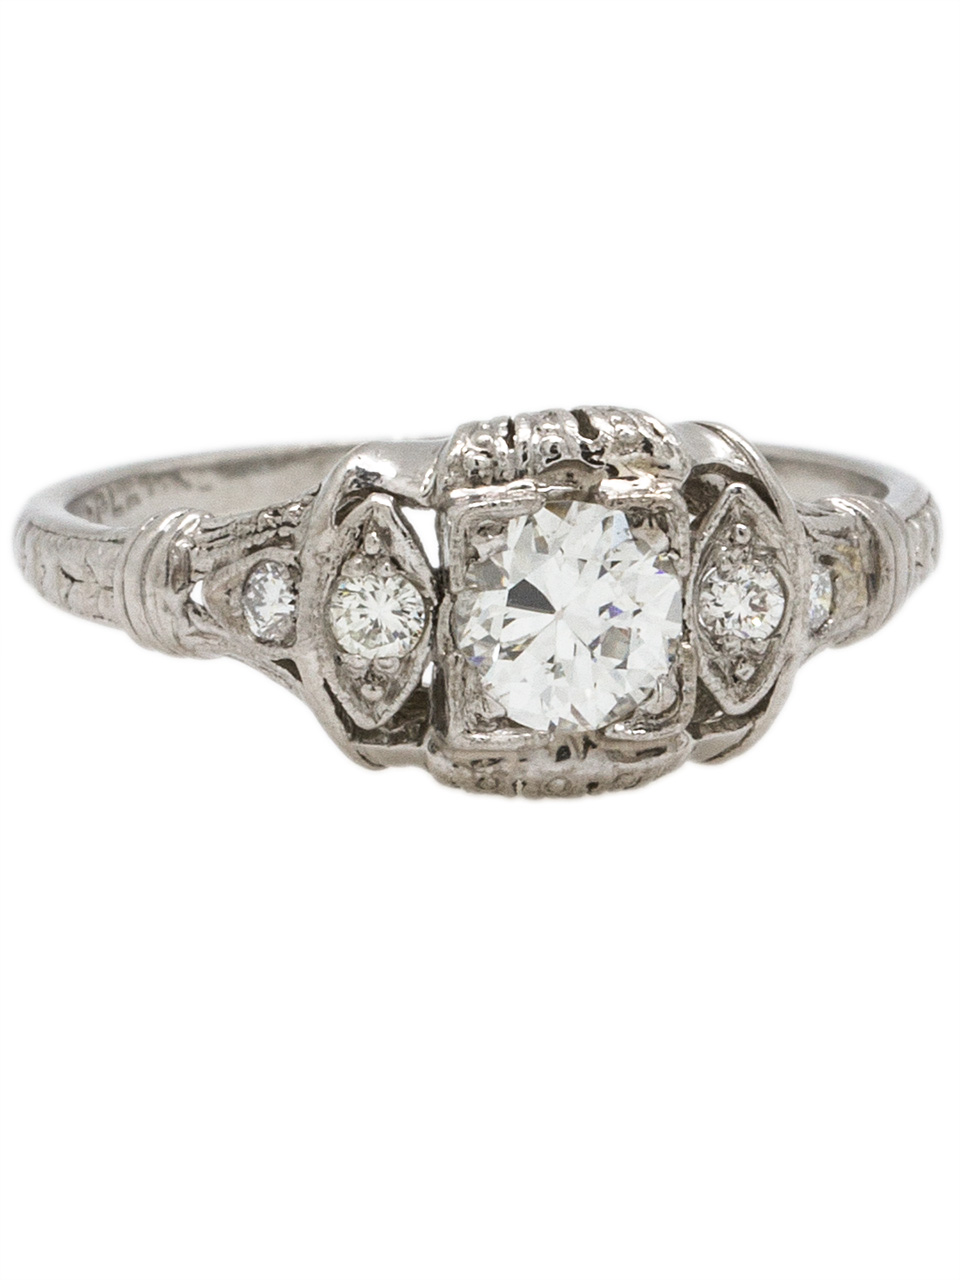 Vintage Art Deco Platinum Engagement Ring 0.36ct OEC G-SI1 circa 1930s